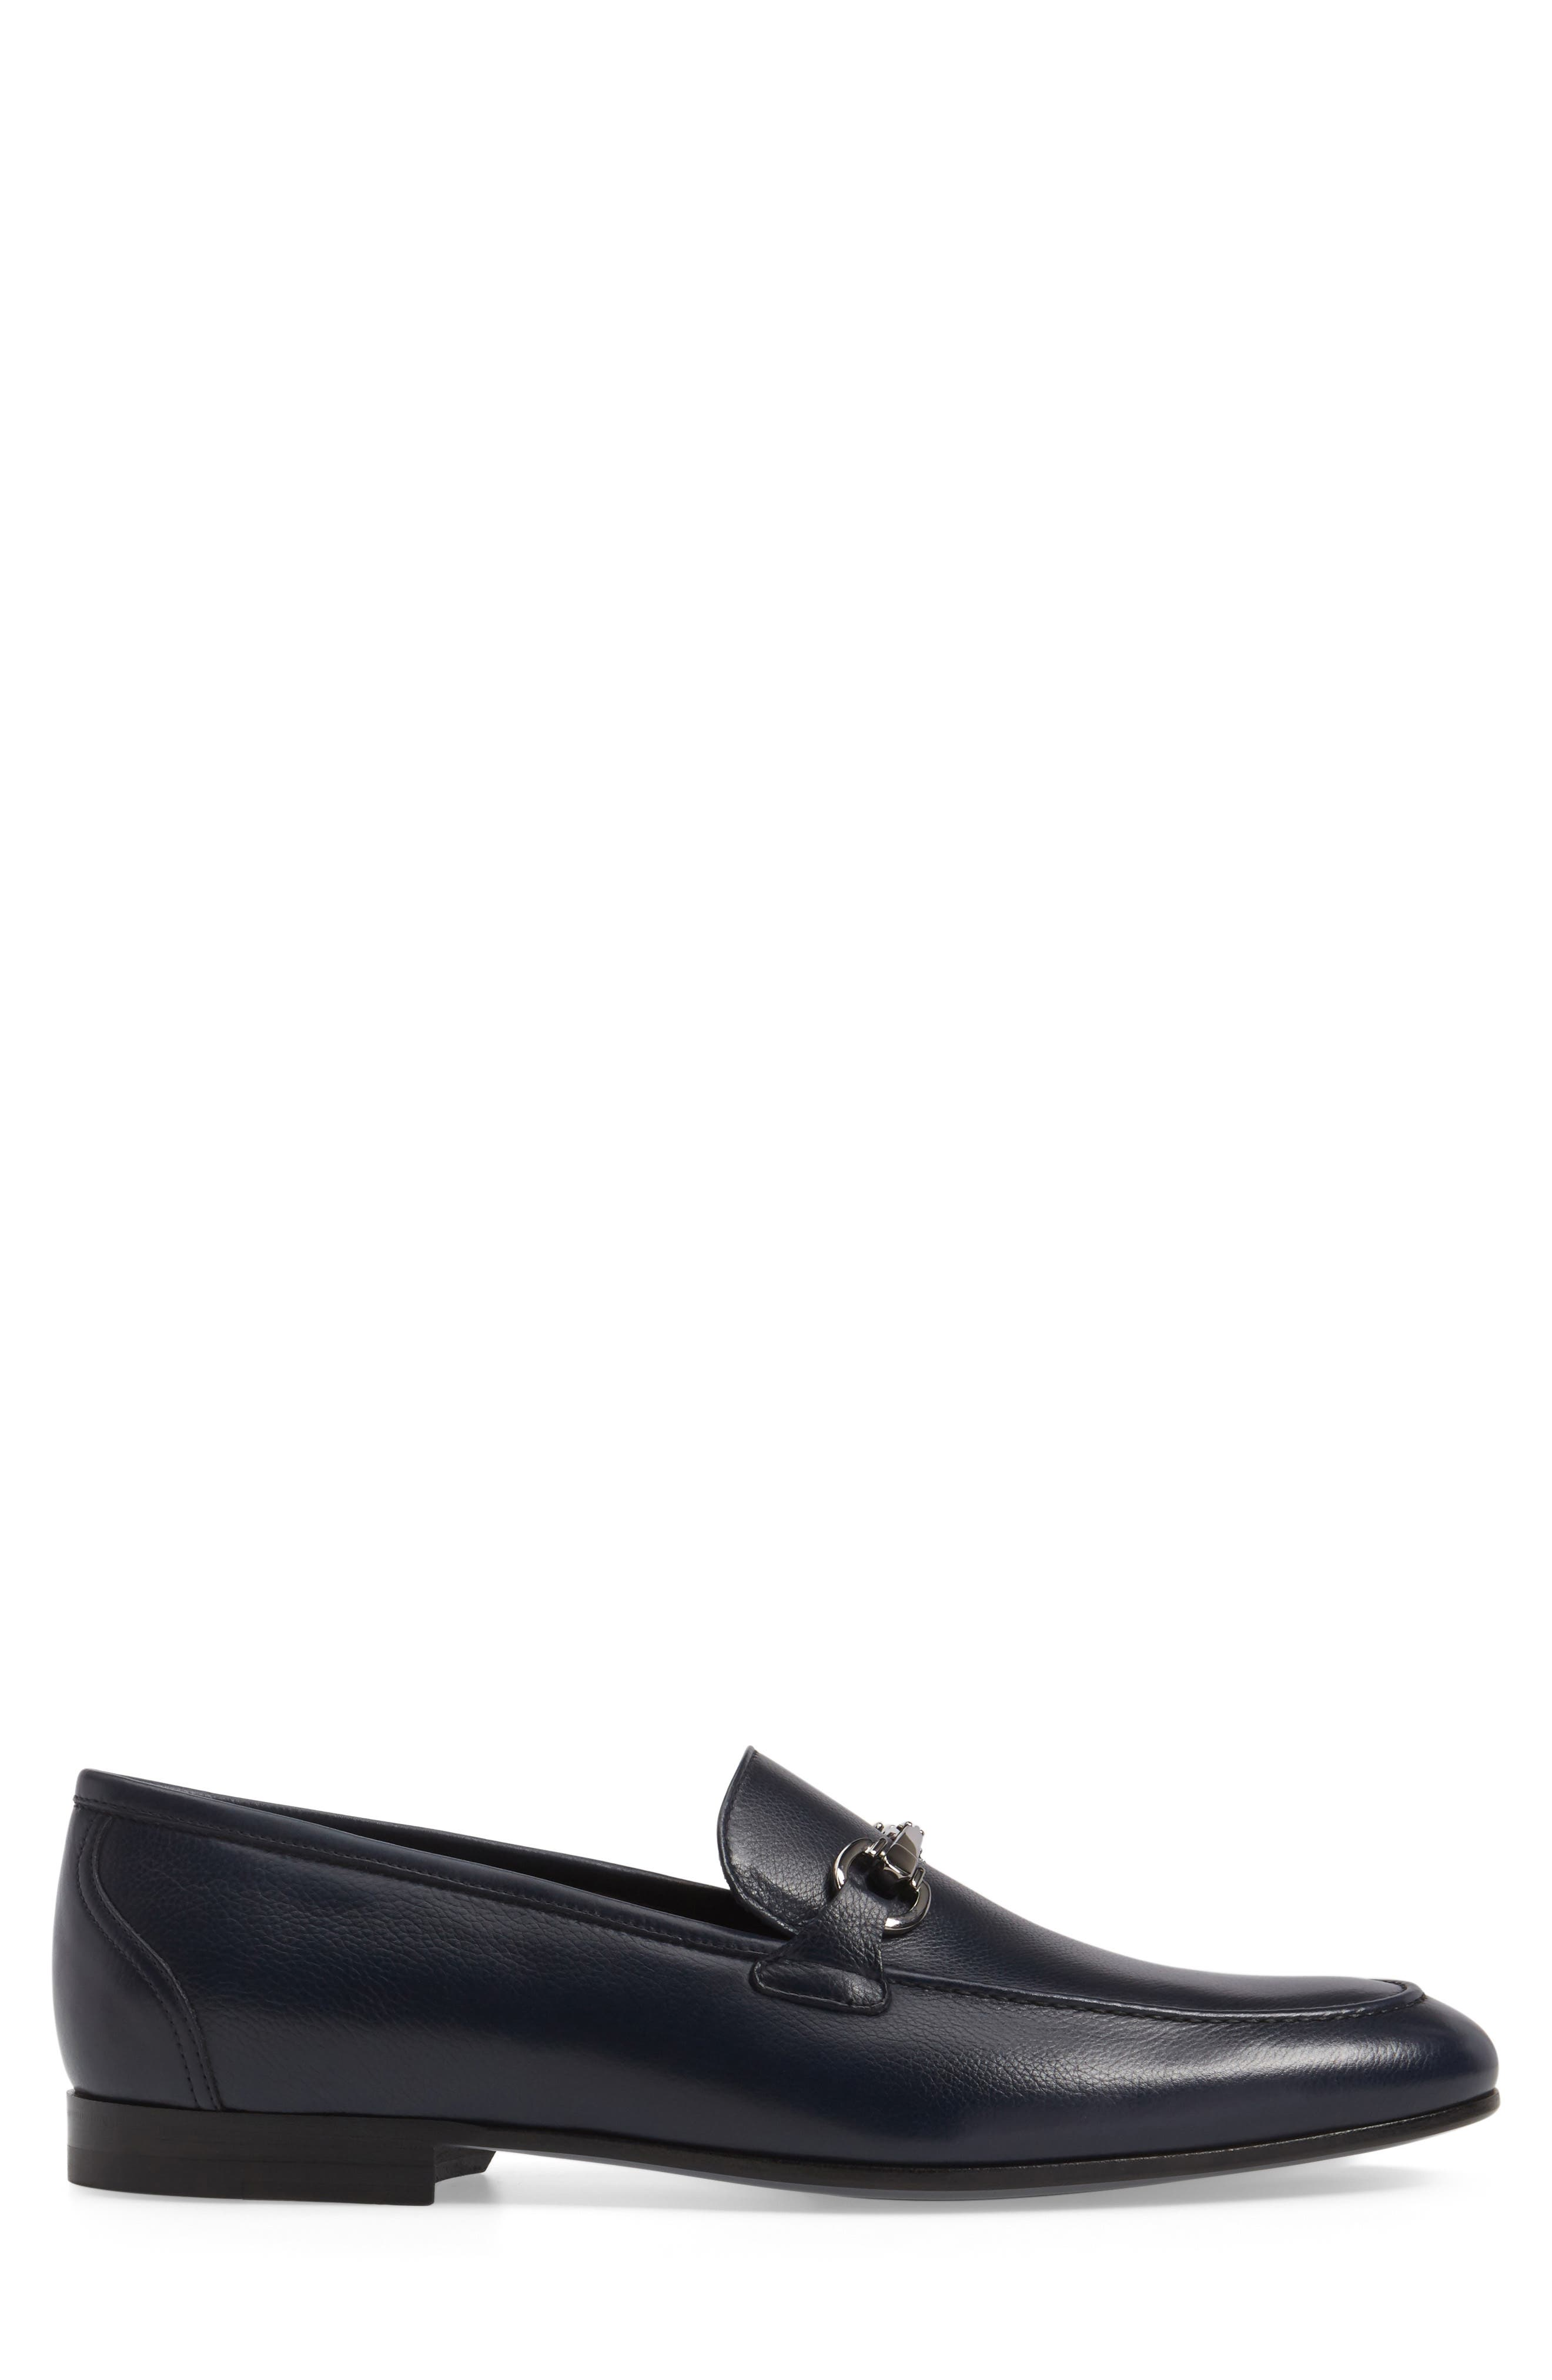 Brianza Bit Loafer,                             Alternate thumbnail 19, color,